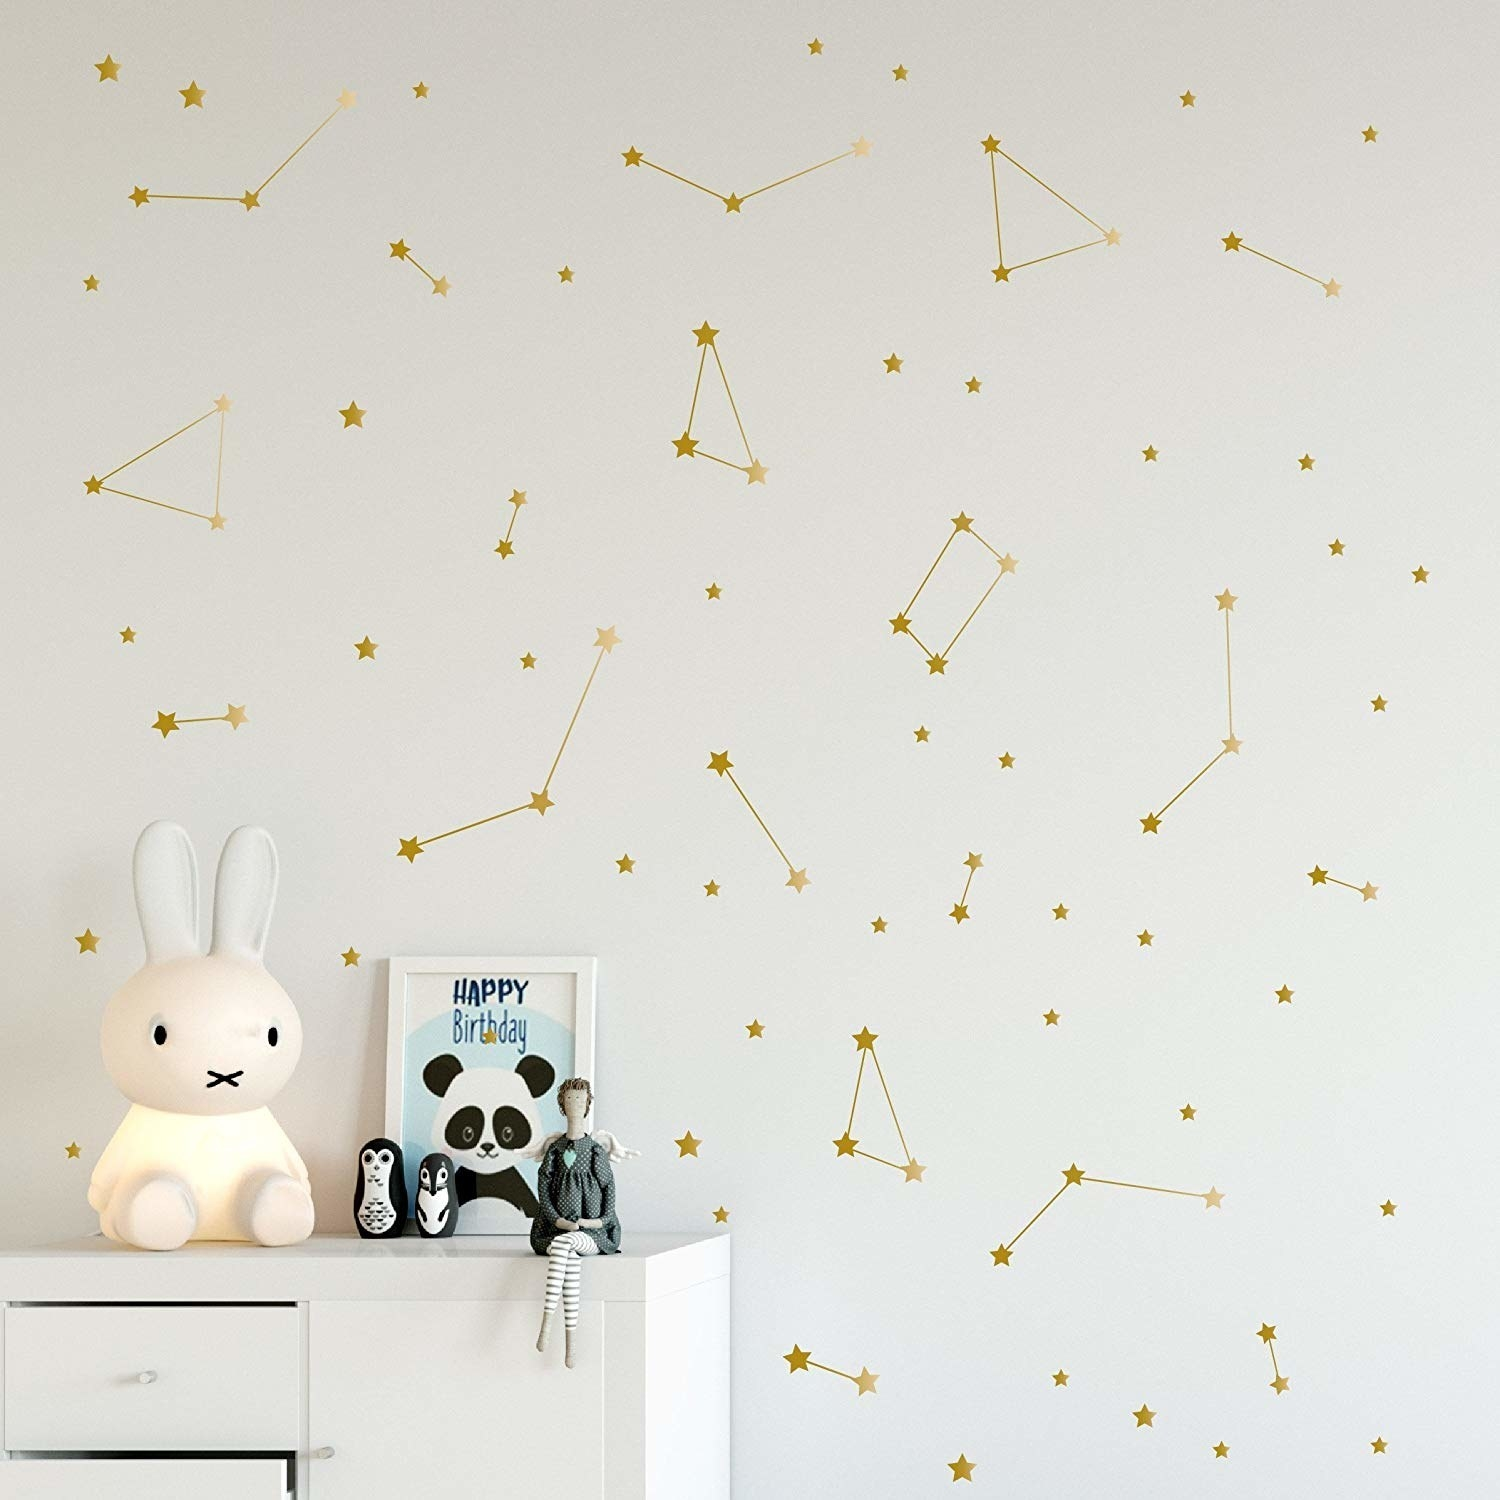 Little gold minimalist stickers with star and constellation shapes on a wall